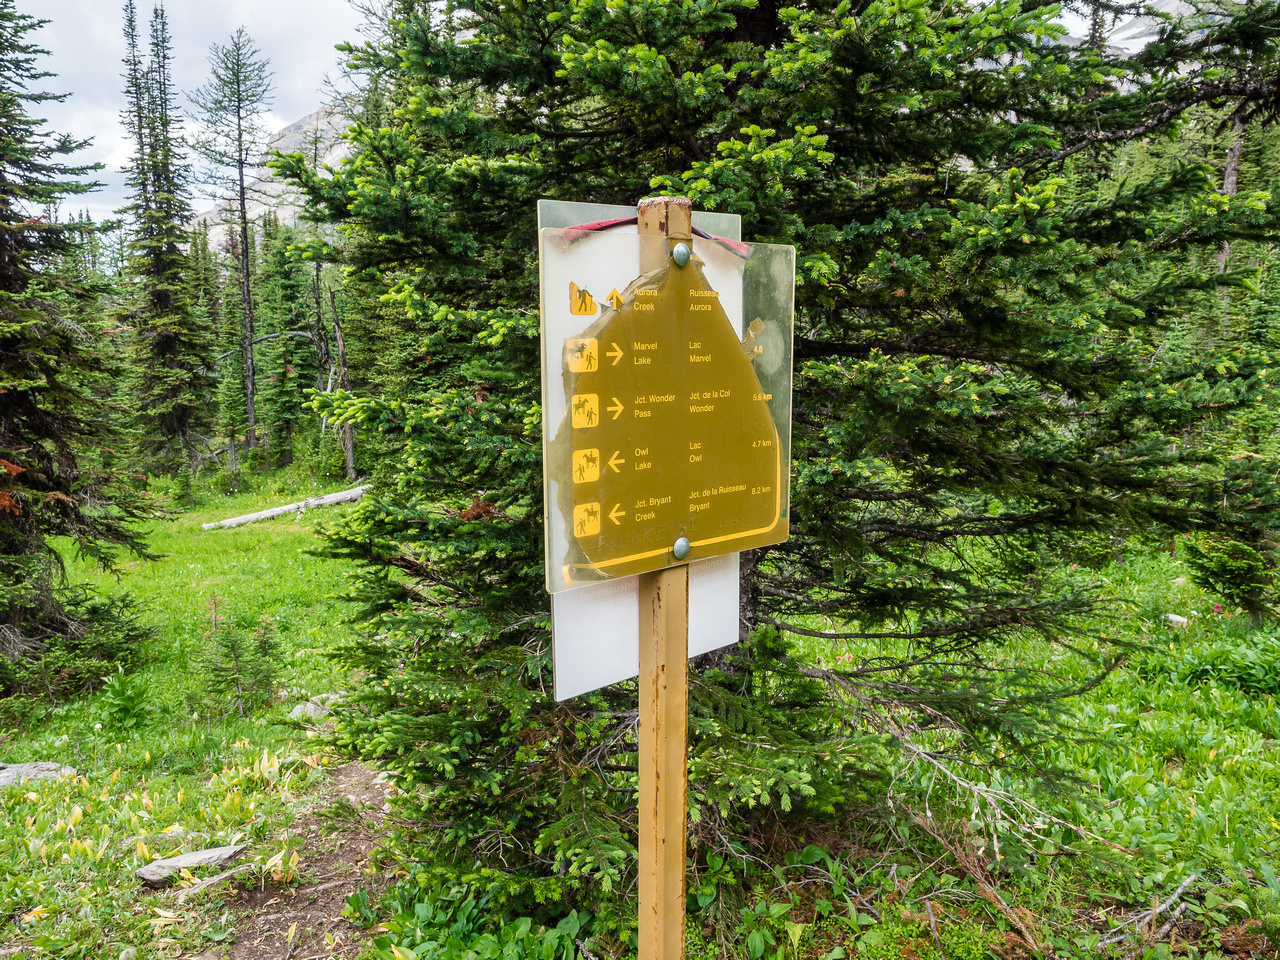 Chewed up sign showing different trails from the pass area including the traverse to Marvel Lake, Wonder Pass and Owl Lake.